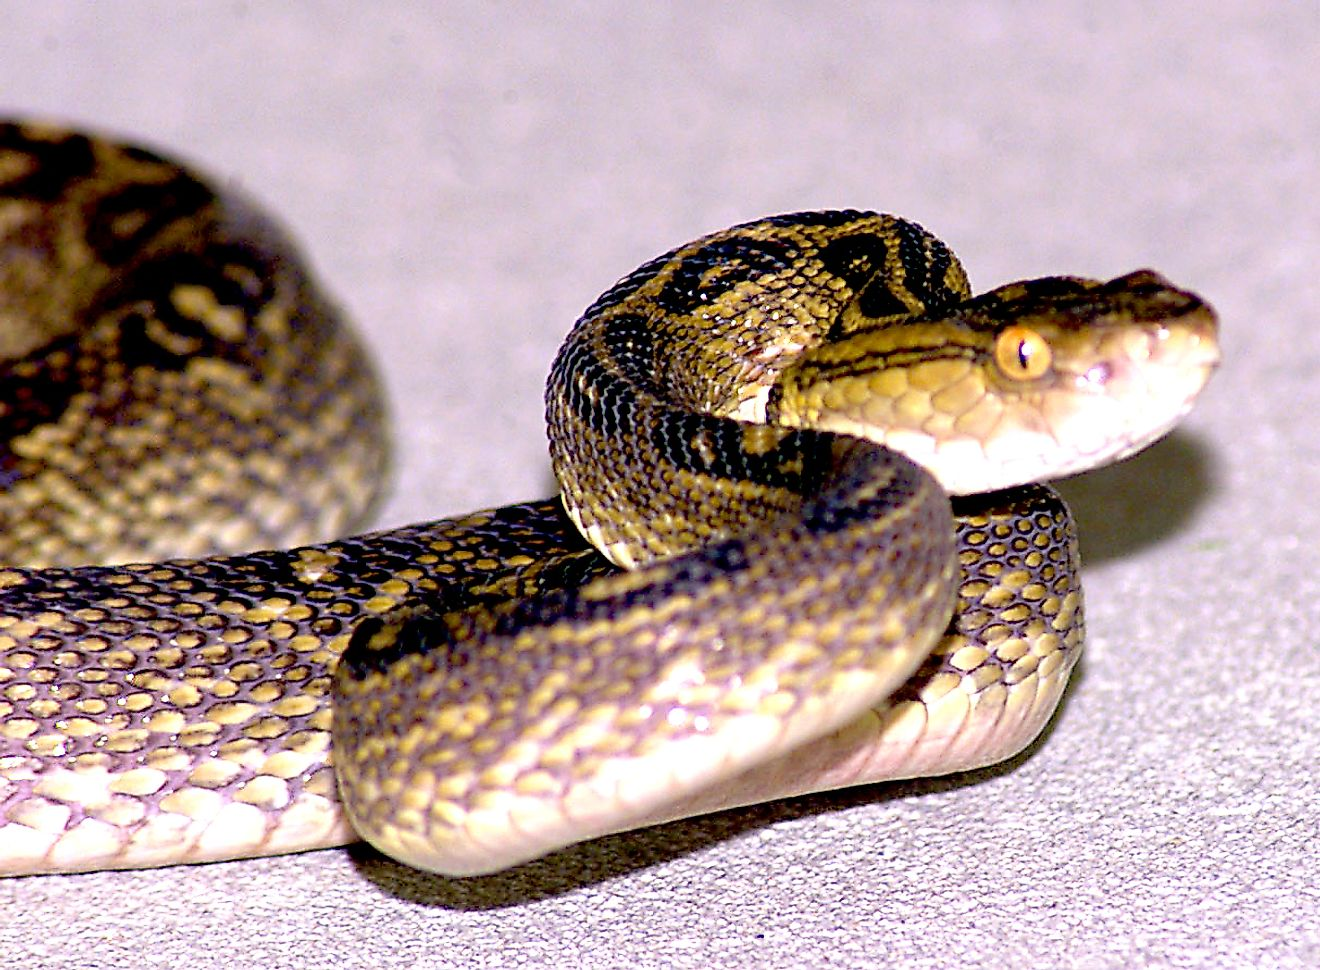 A Habu, a pit viper found in the Ryukyu Islands